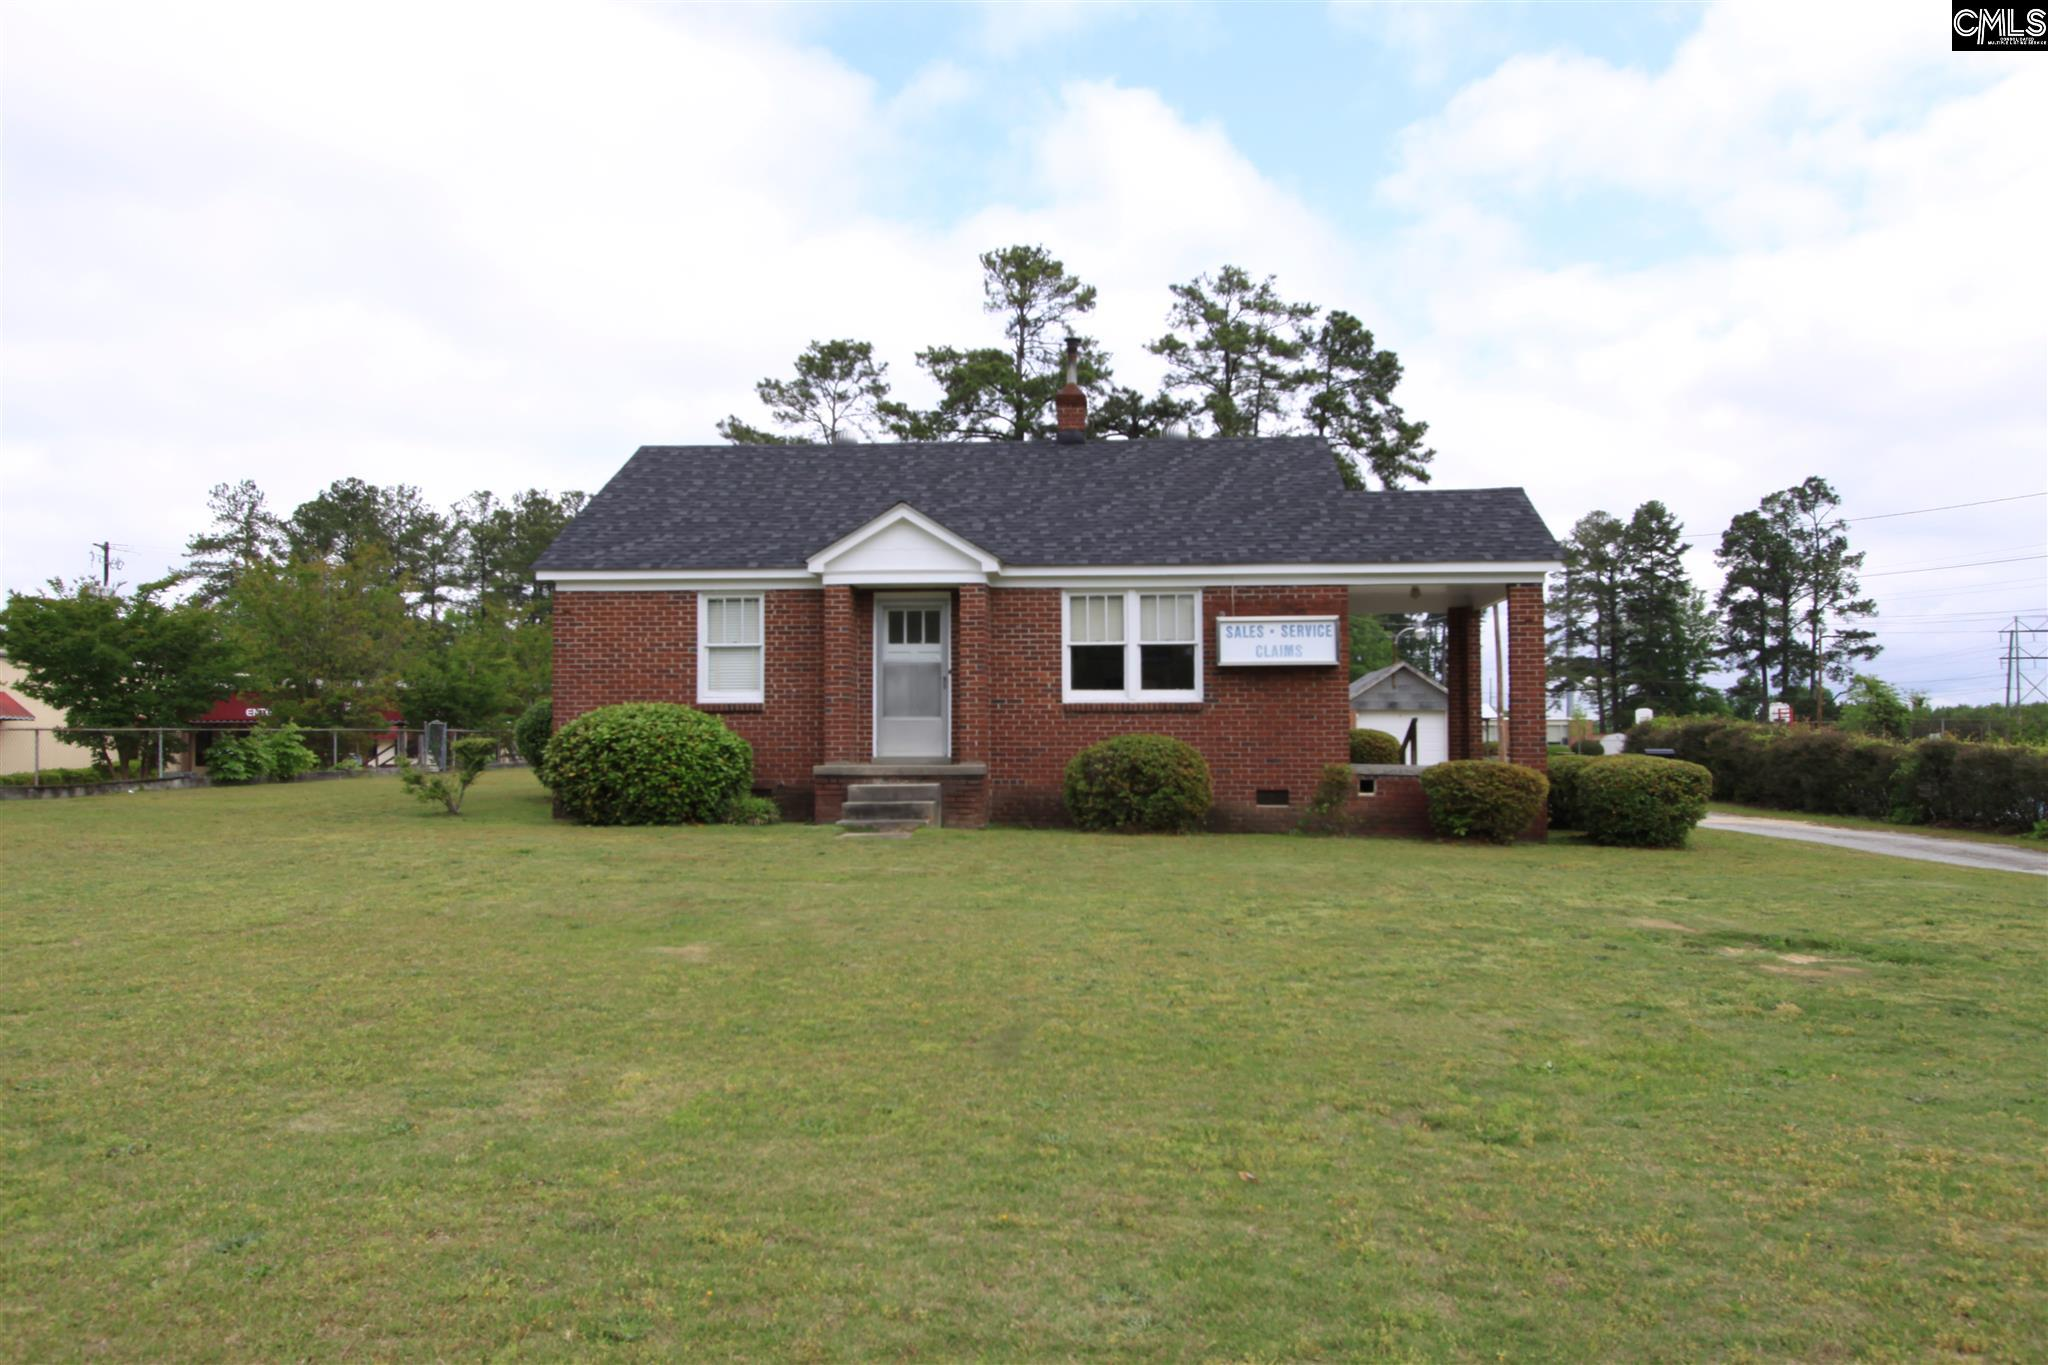 1914 Sunset West Columbia, SC 29169